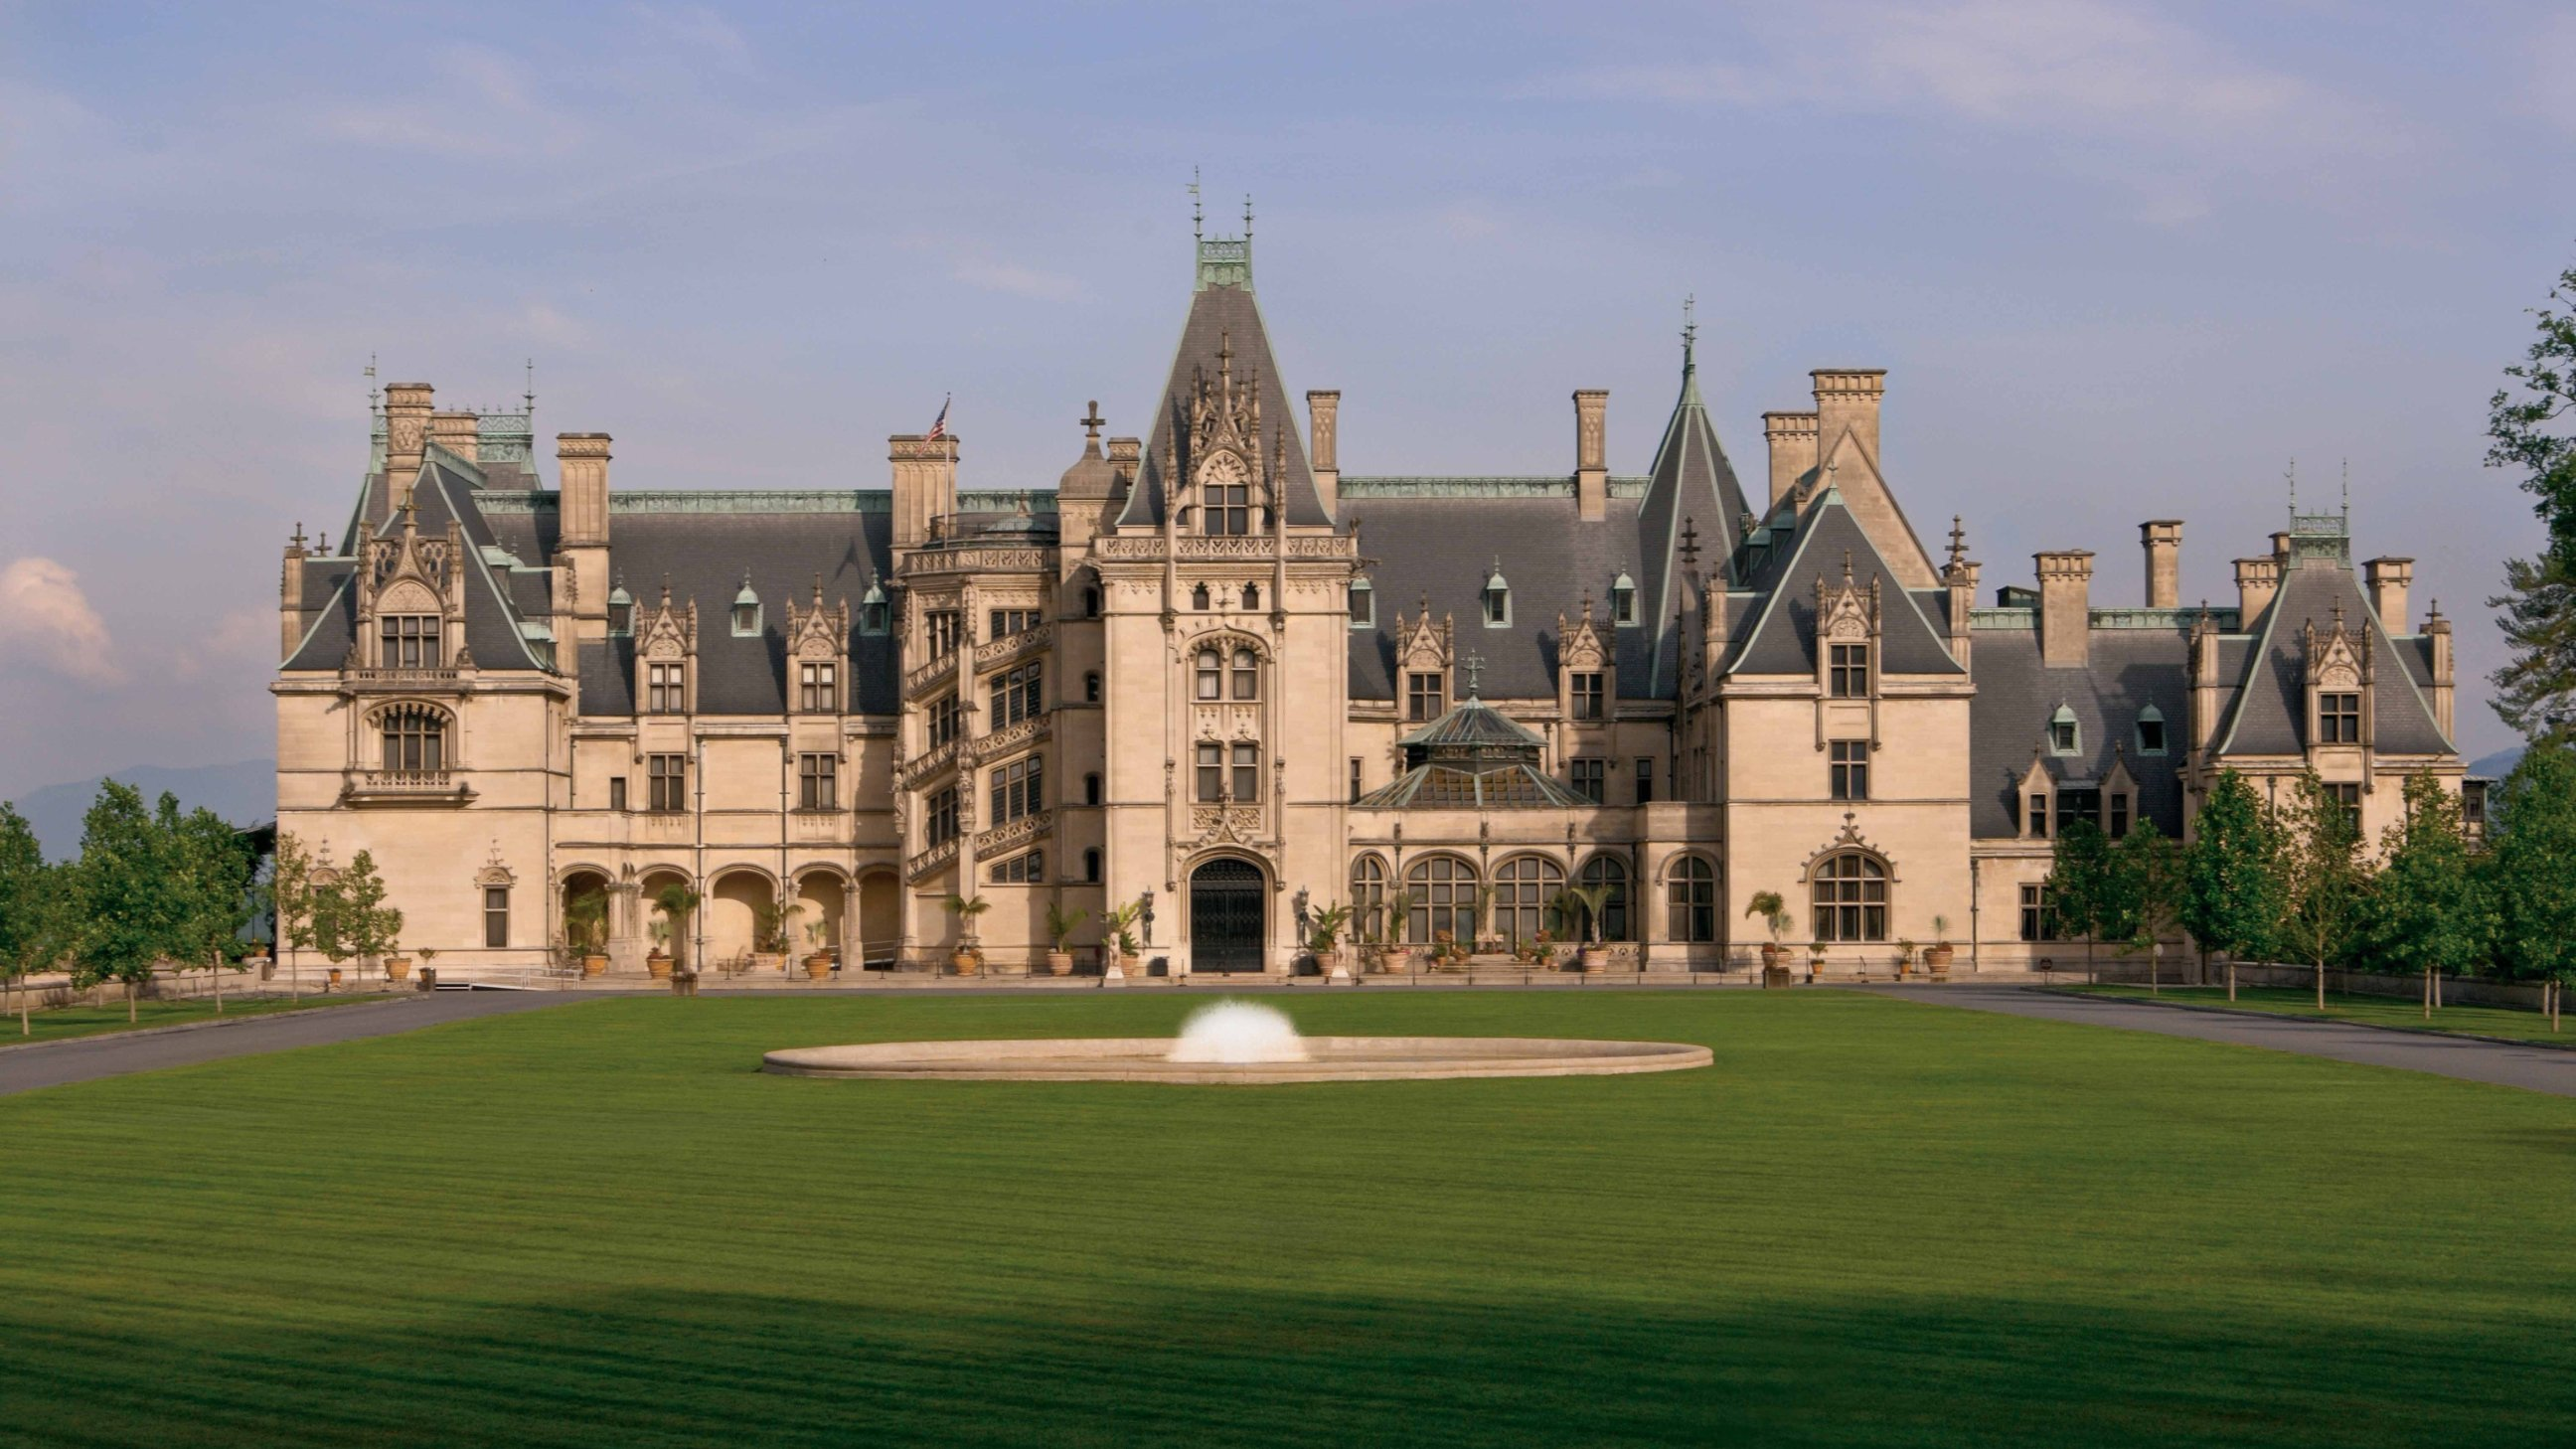 8 castle hotels in u s with lots of room for romance cnn travel